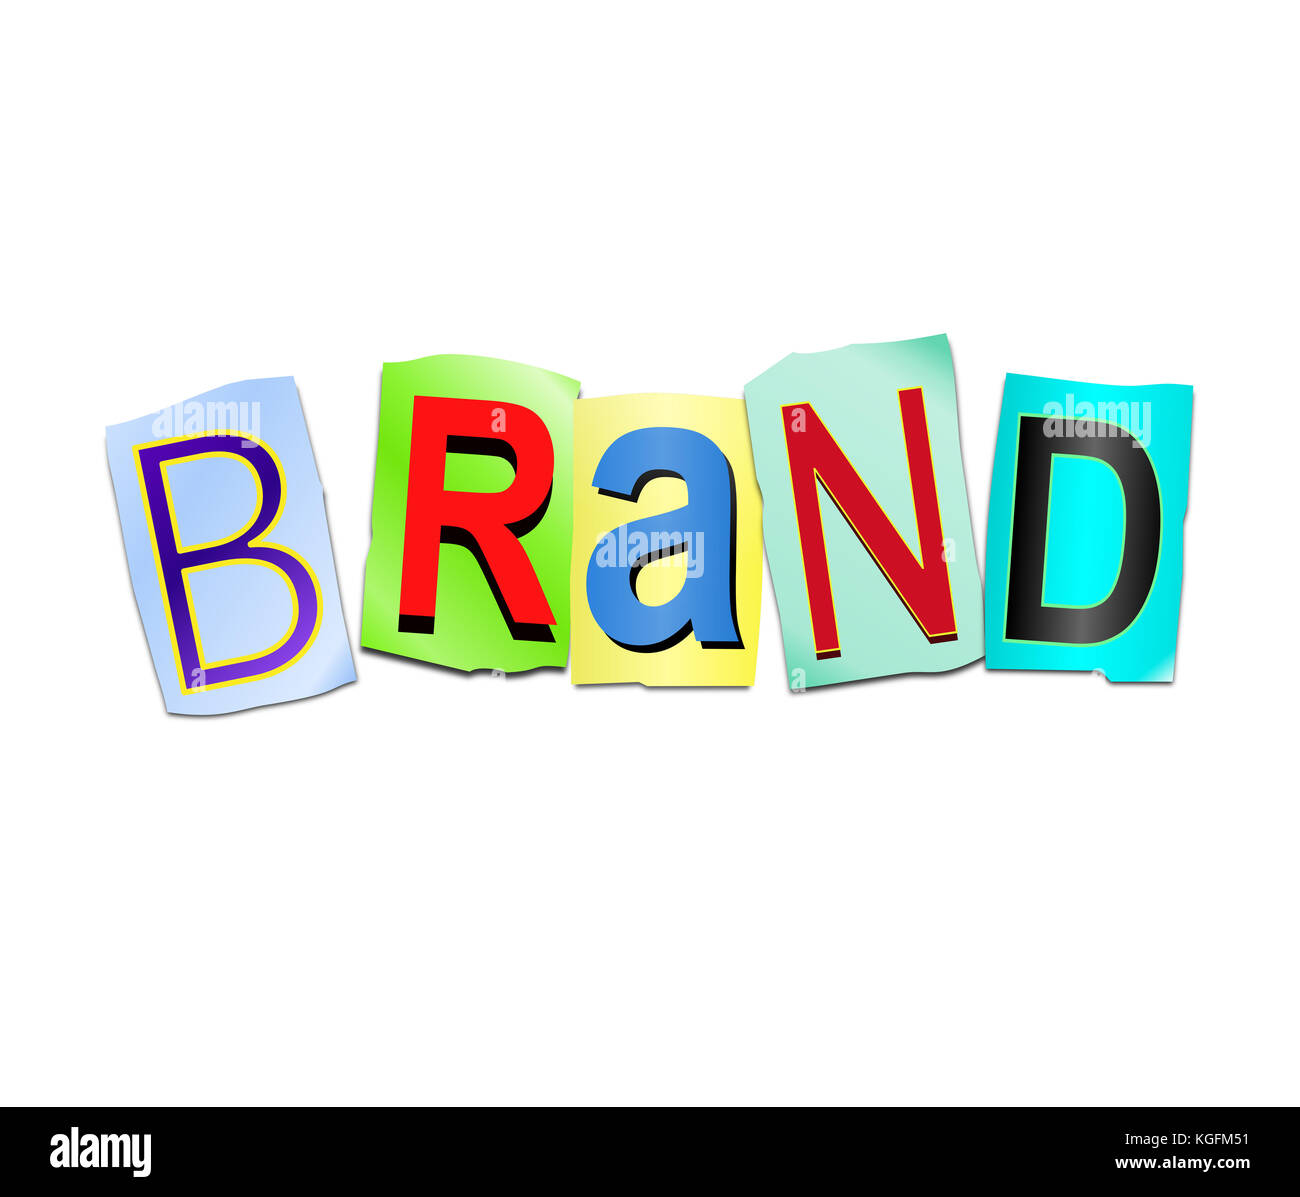 Dryer Sheets Woolworths Brand Name Product Stock Photos And Brand Name Product Stock